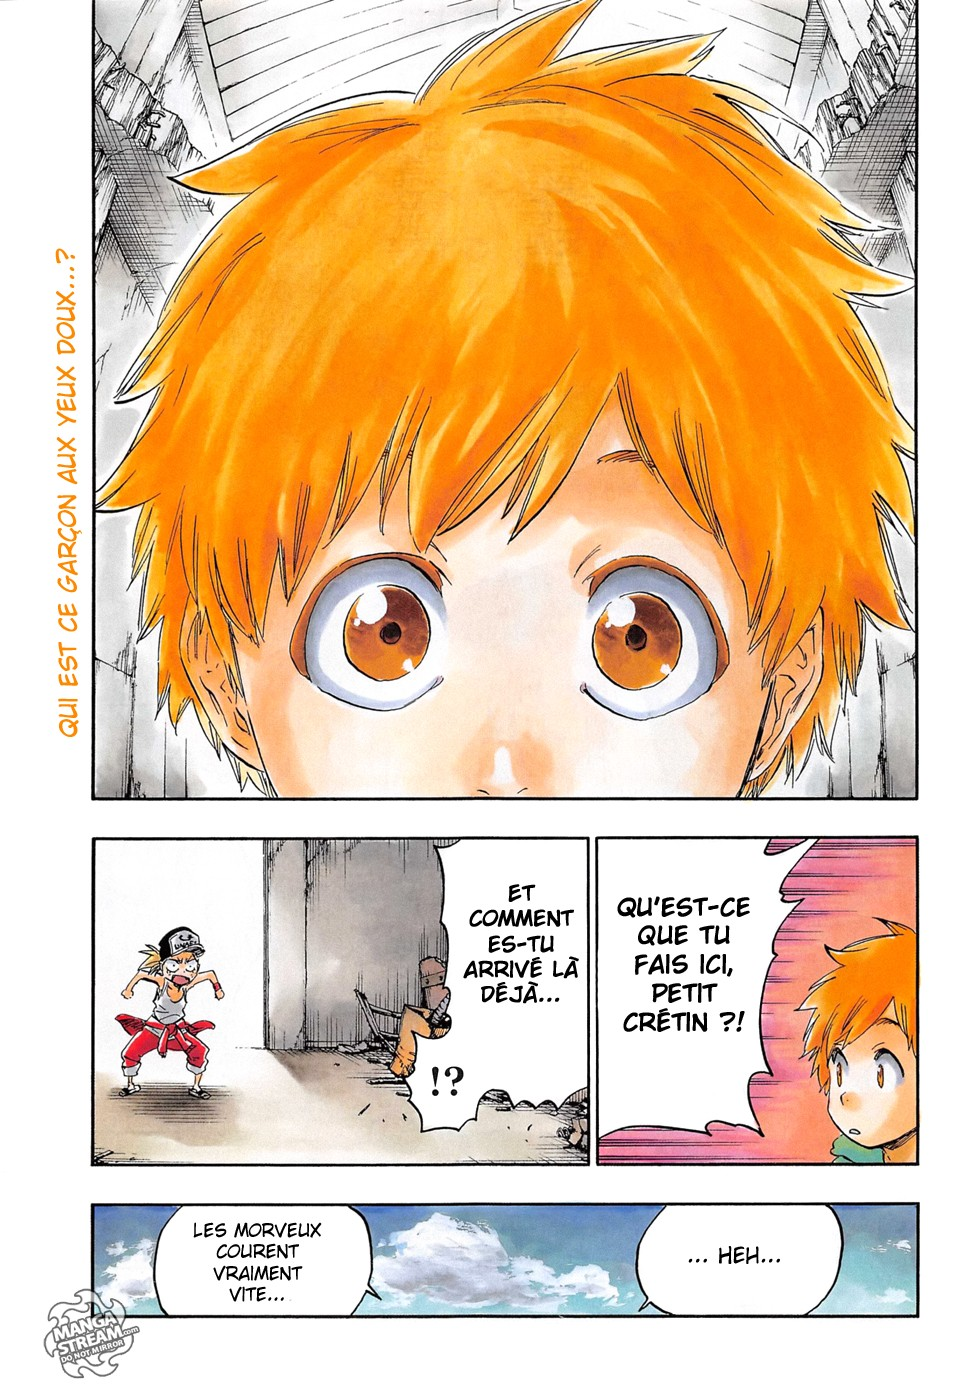 https://nine.mangadogs.com/fr_manga/pic1/2/2/1128/Bleach686VF_0_444.png Page 1